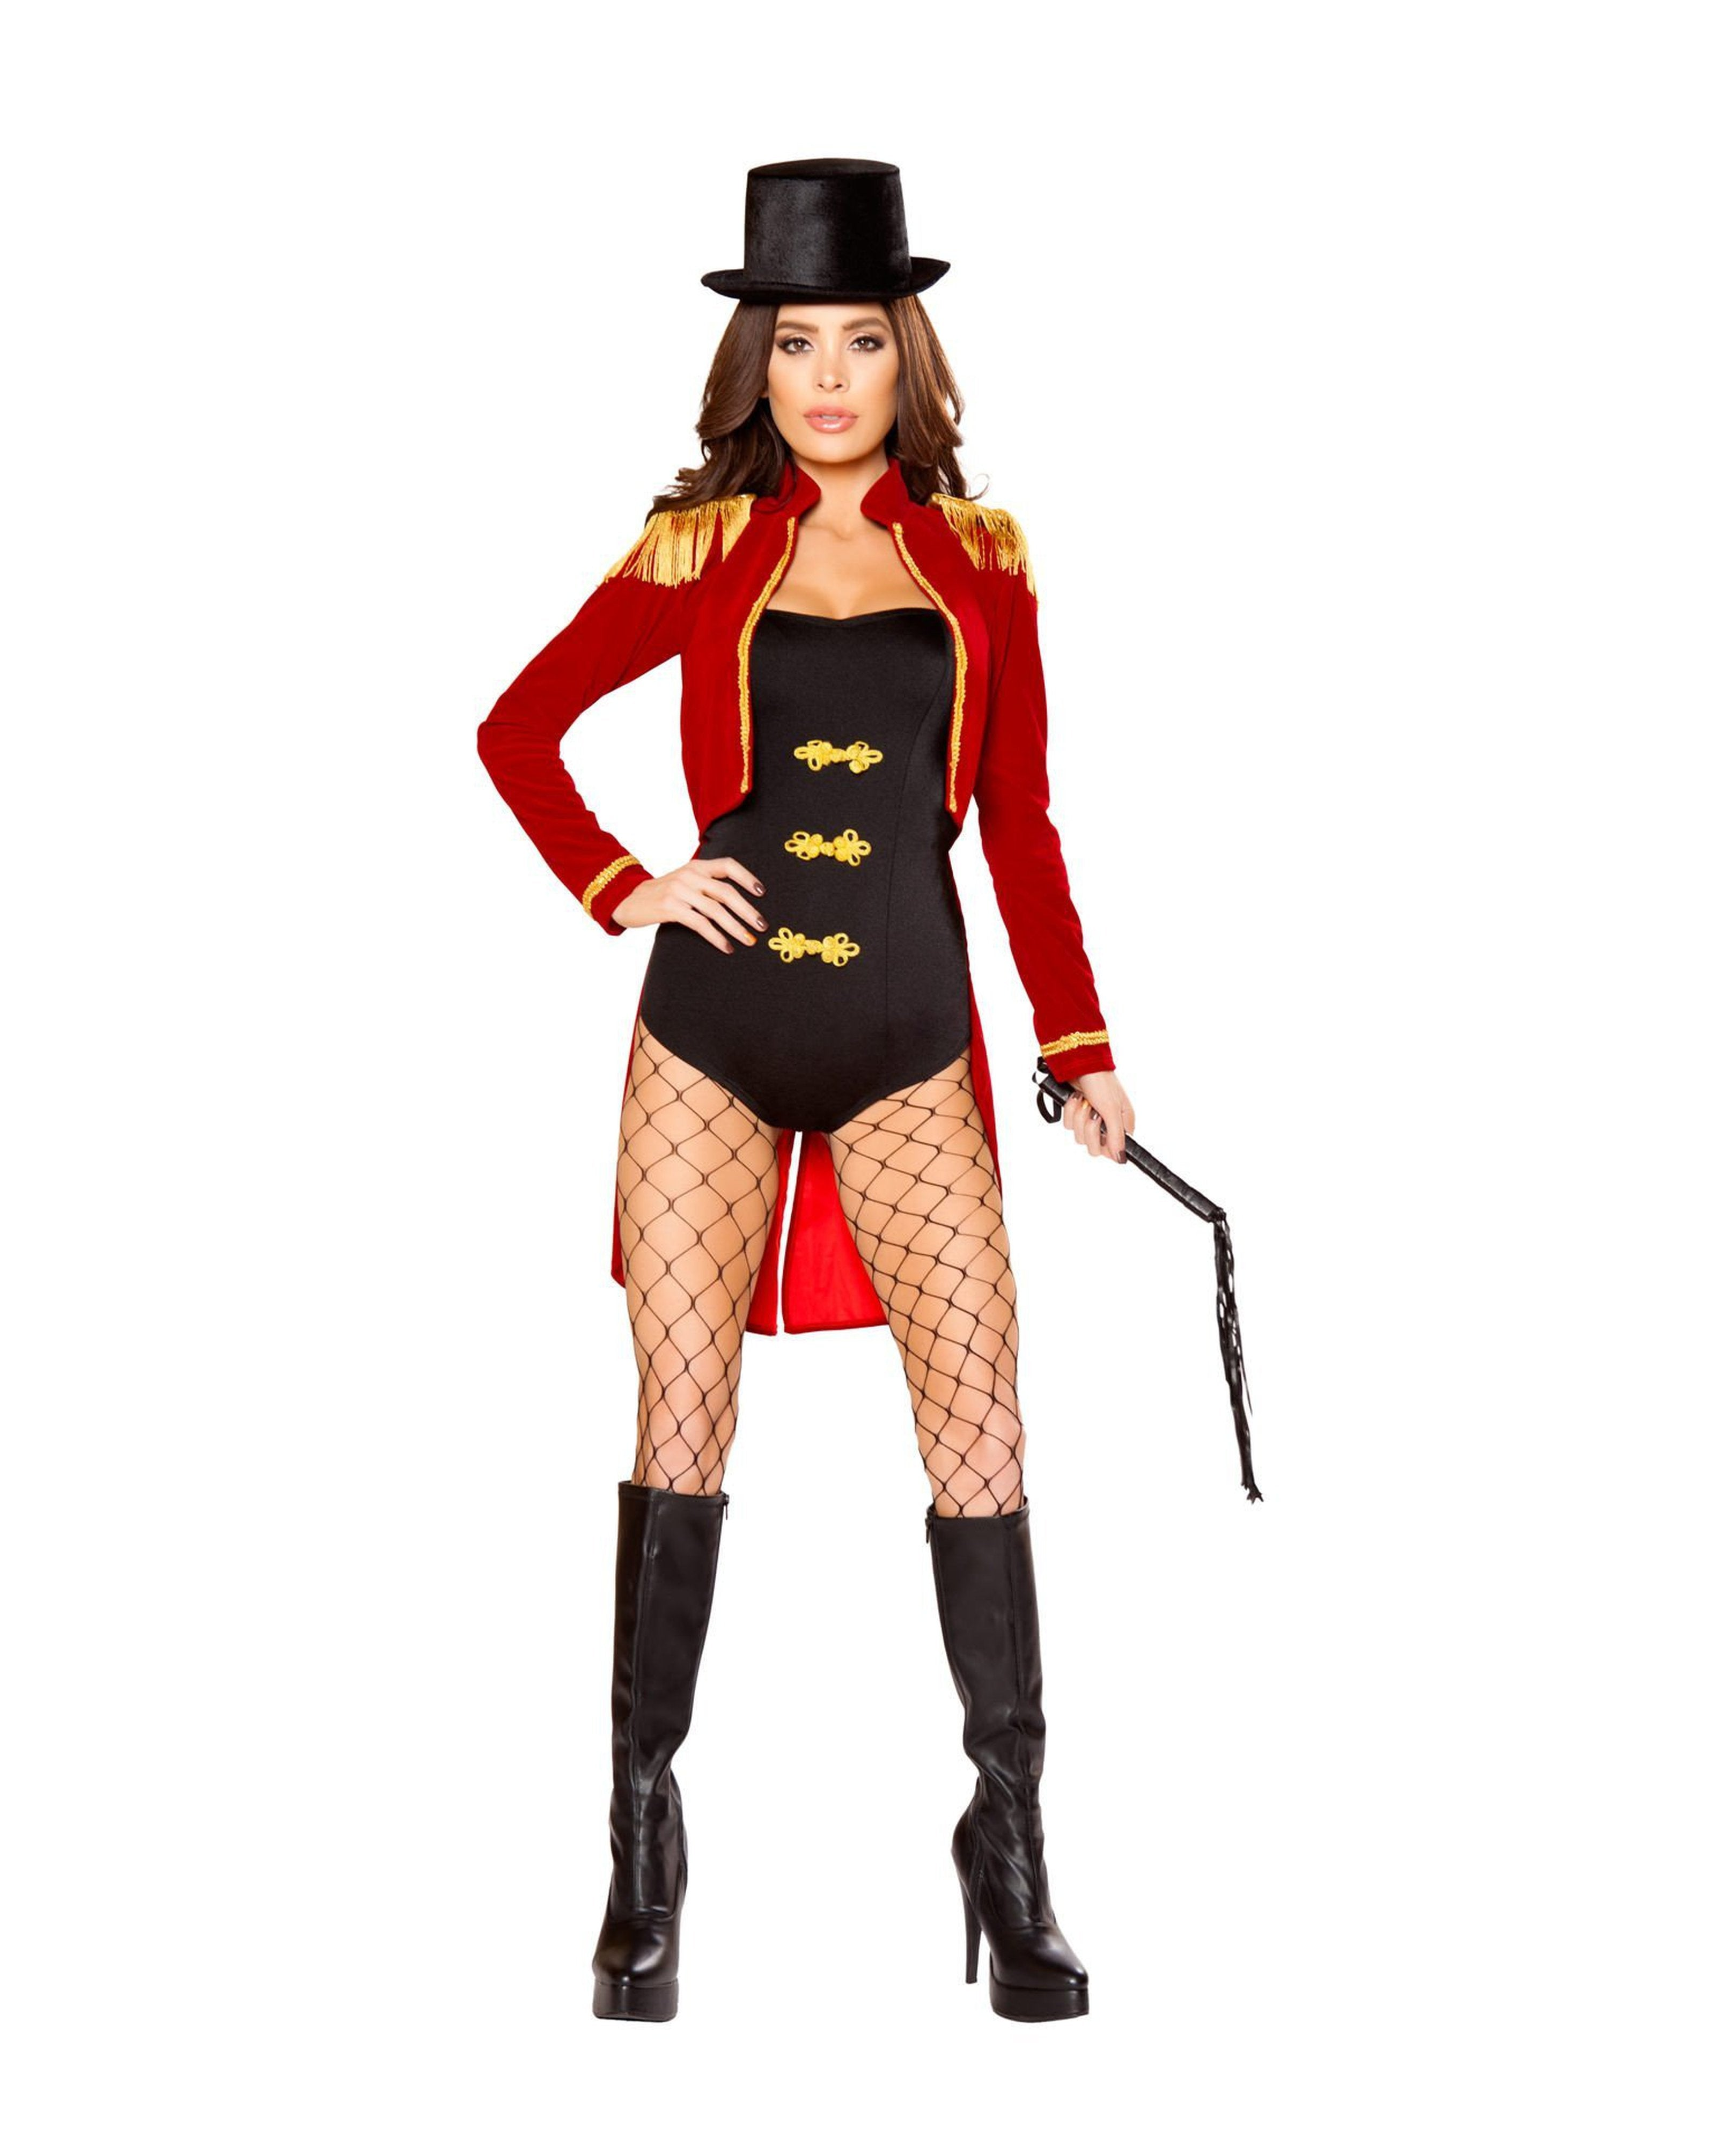 Sassy Ring Leader costumes Size SmallColor Black/Red/GoldNakees